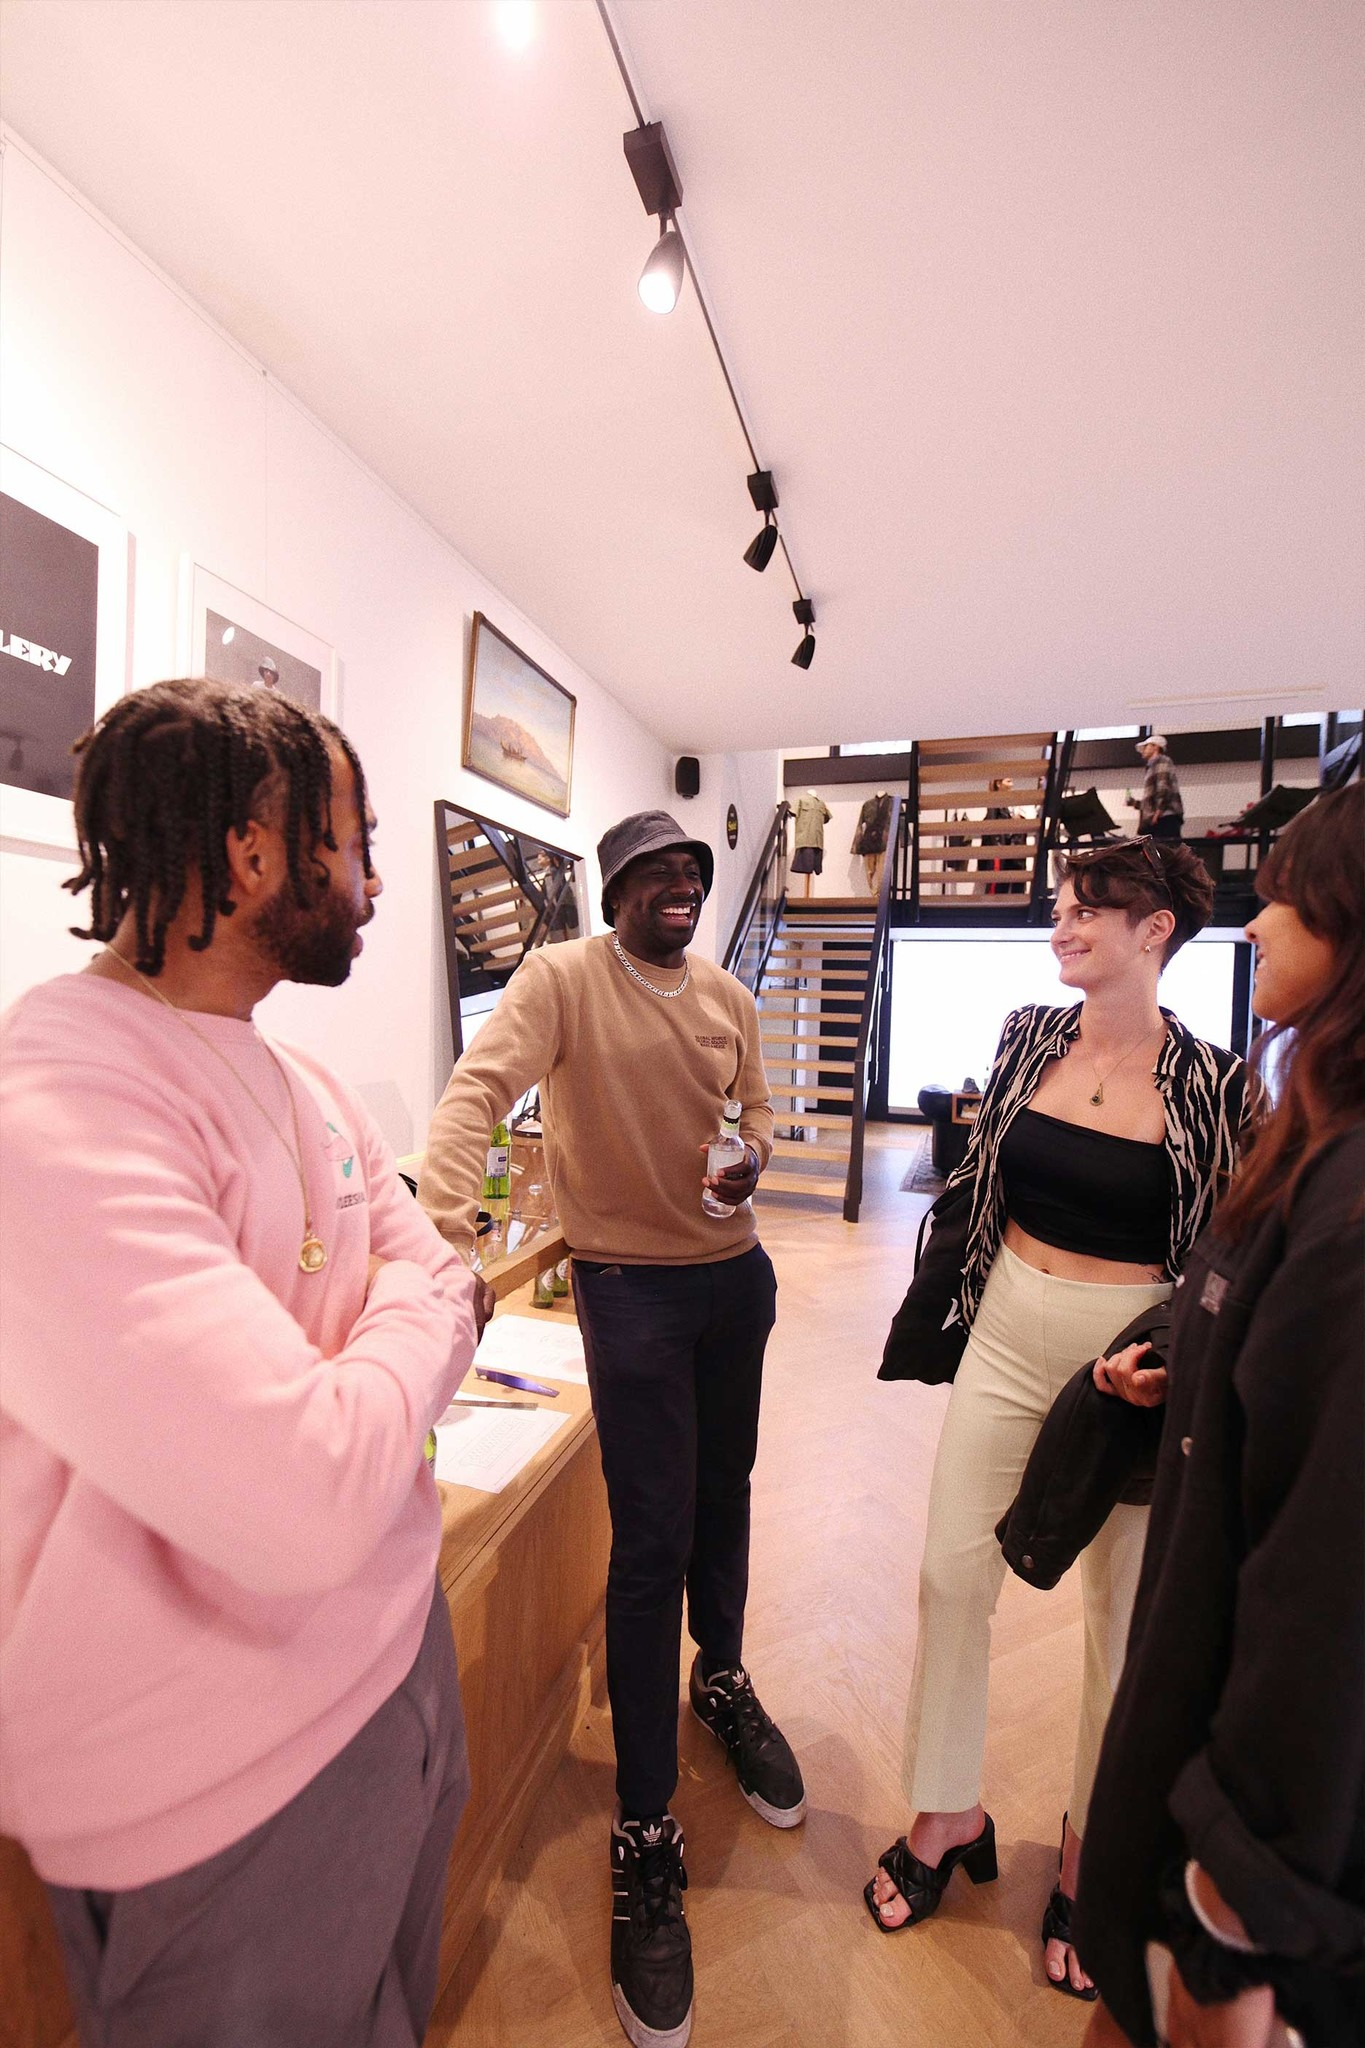 Group of people at OALLERY store in Amsterdam